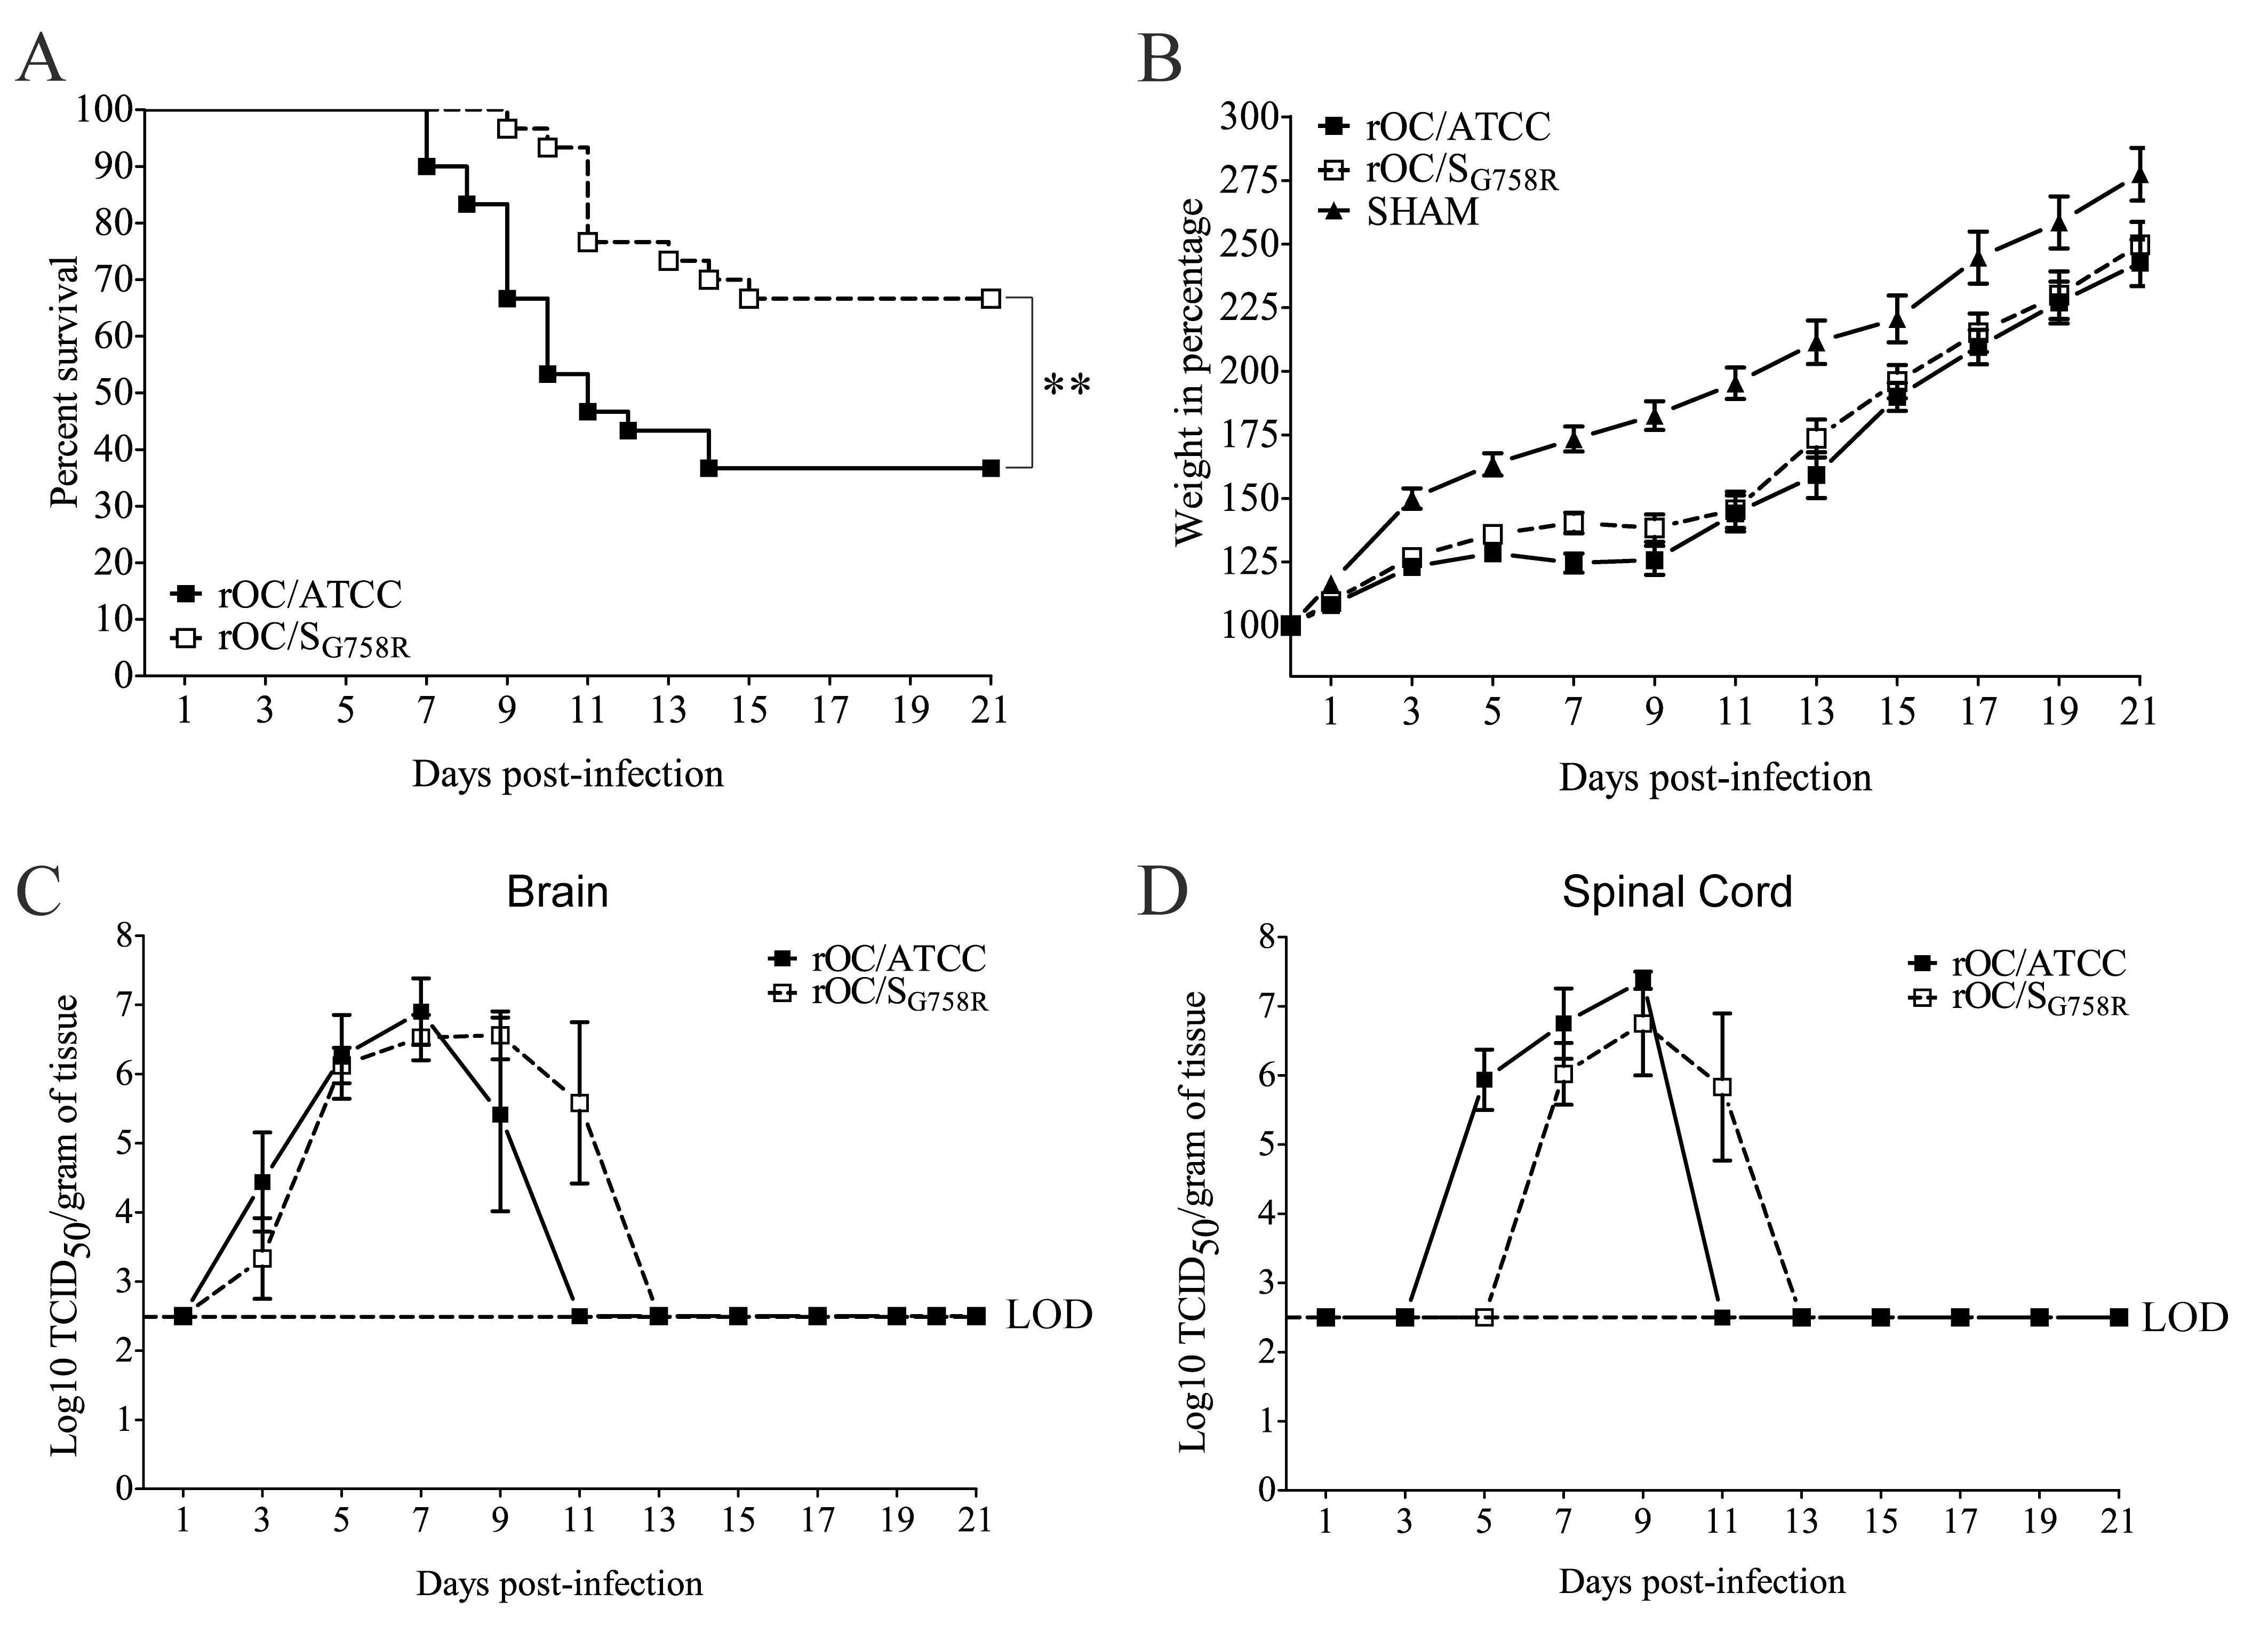 Both variants rOC/ATCC and rOC/S<sub>G758R</sub> are neuroinvasive and neurovirulent in 10 day-old BALB/c mice infected by the intranasal route.